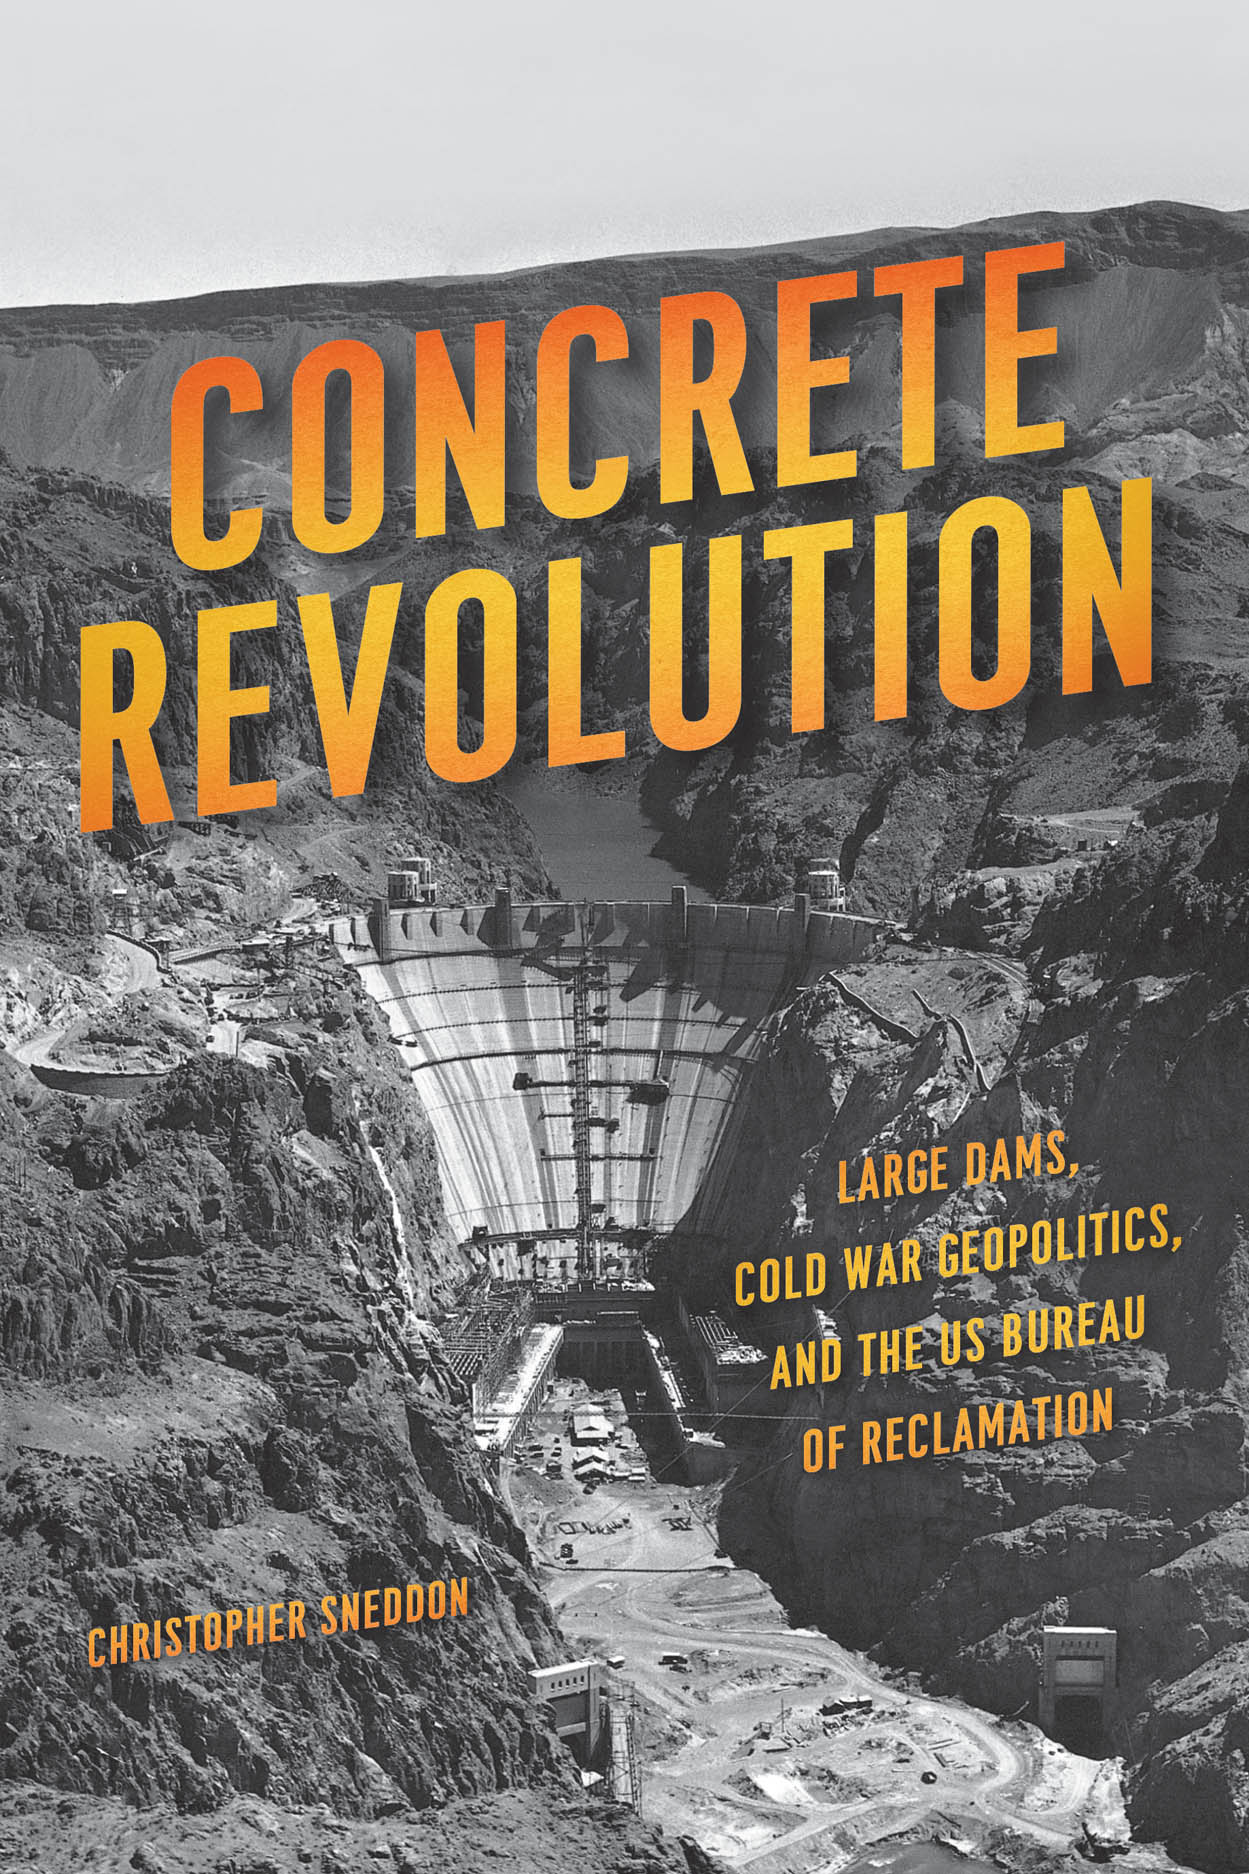 Concrete Revolution